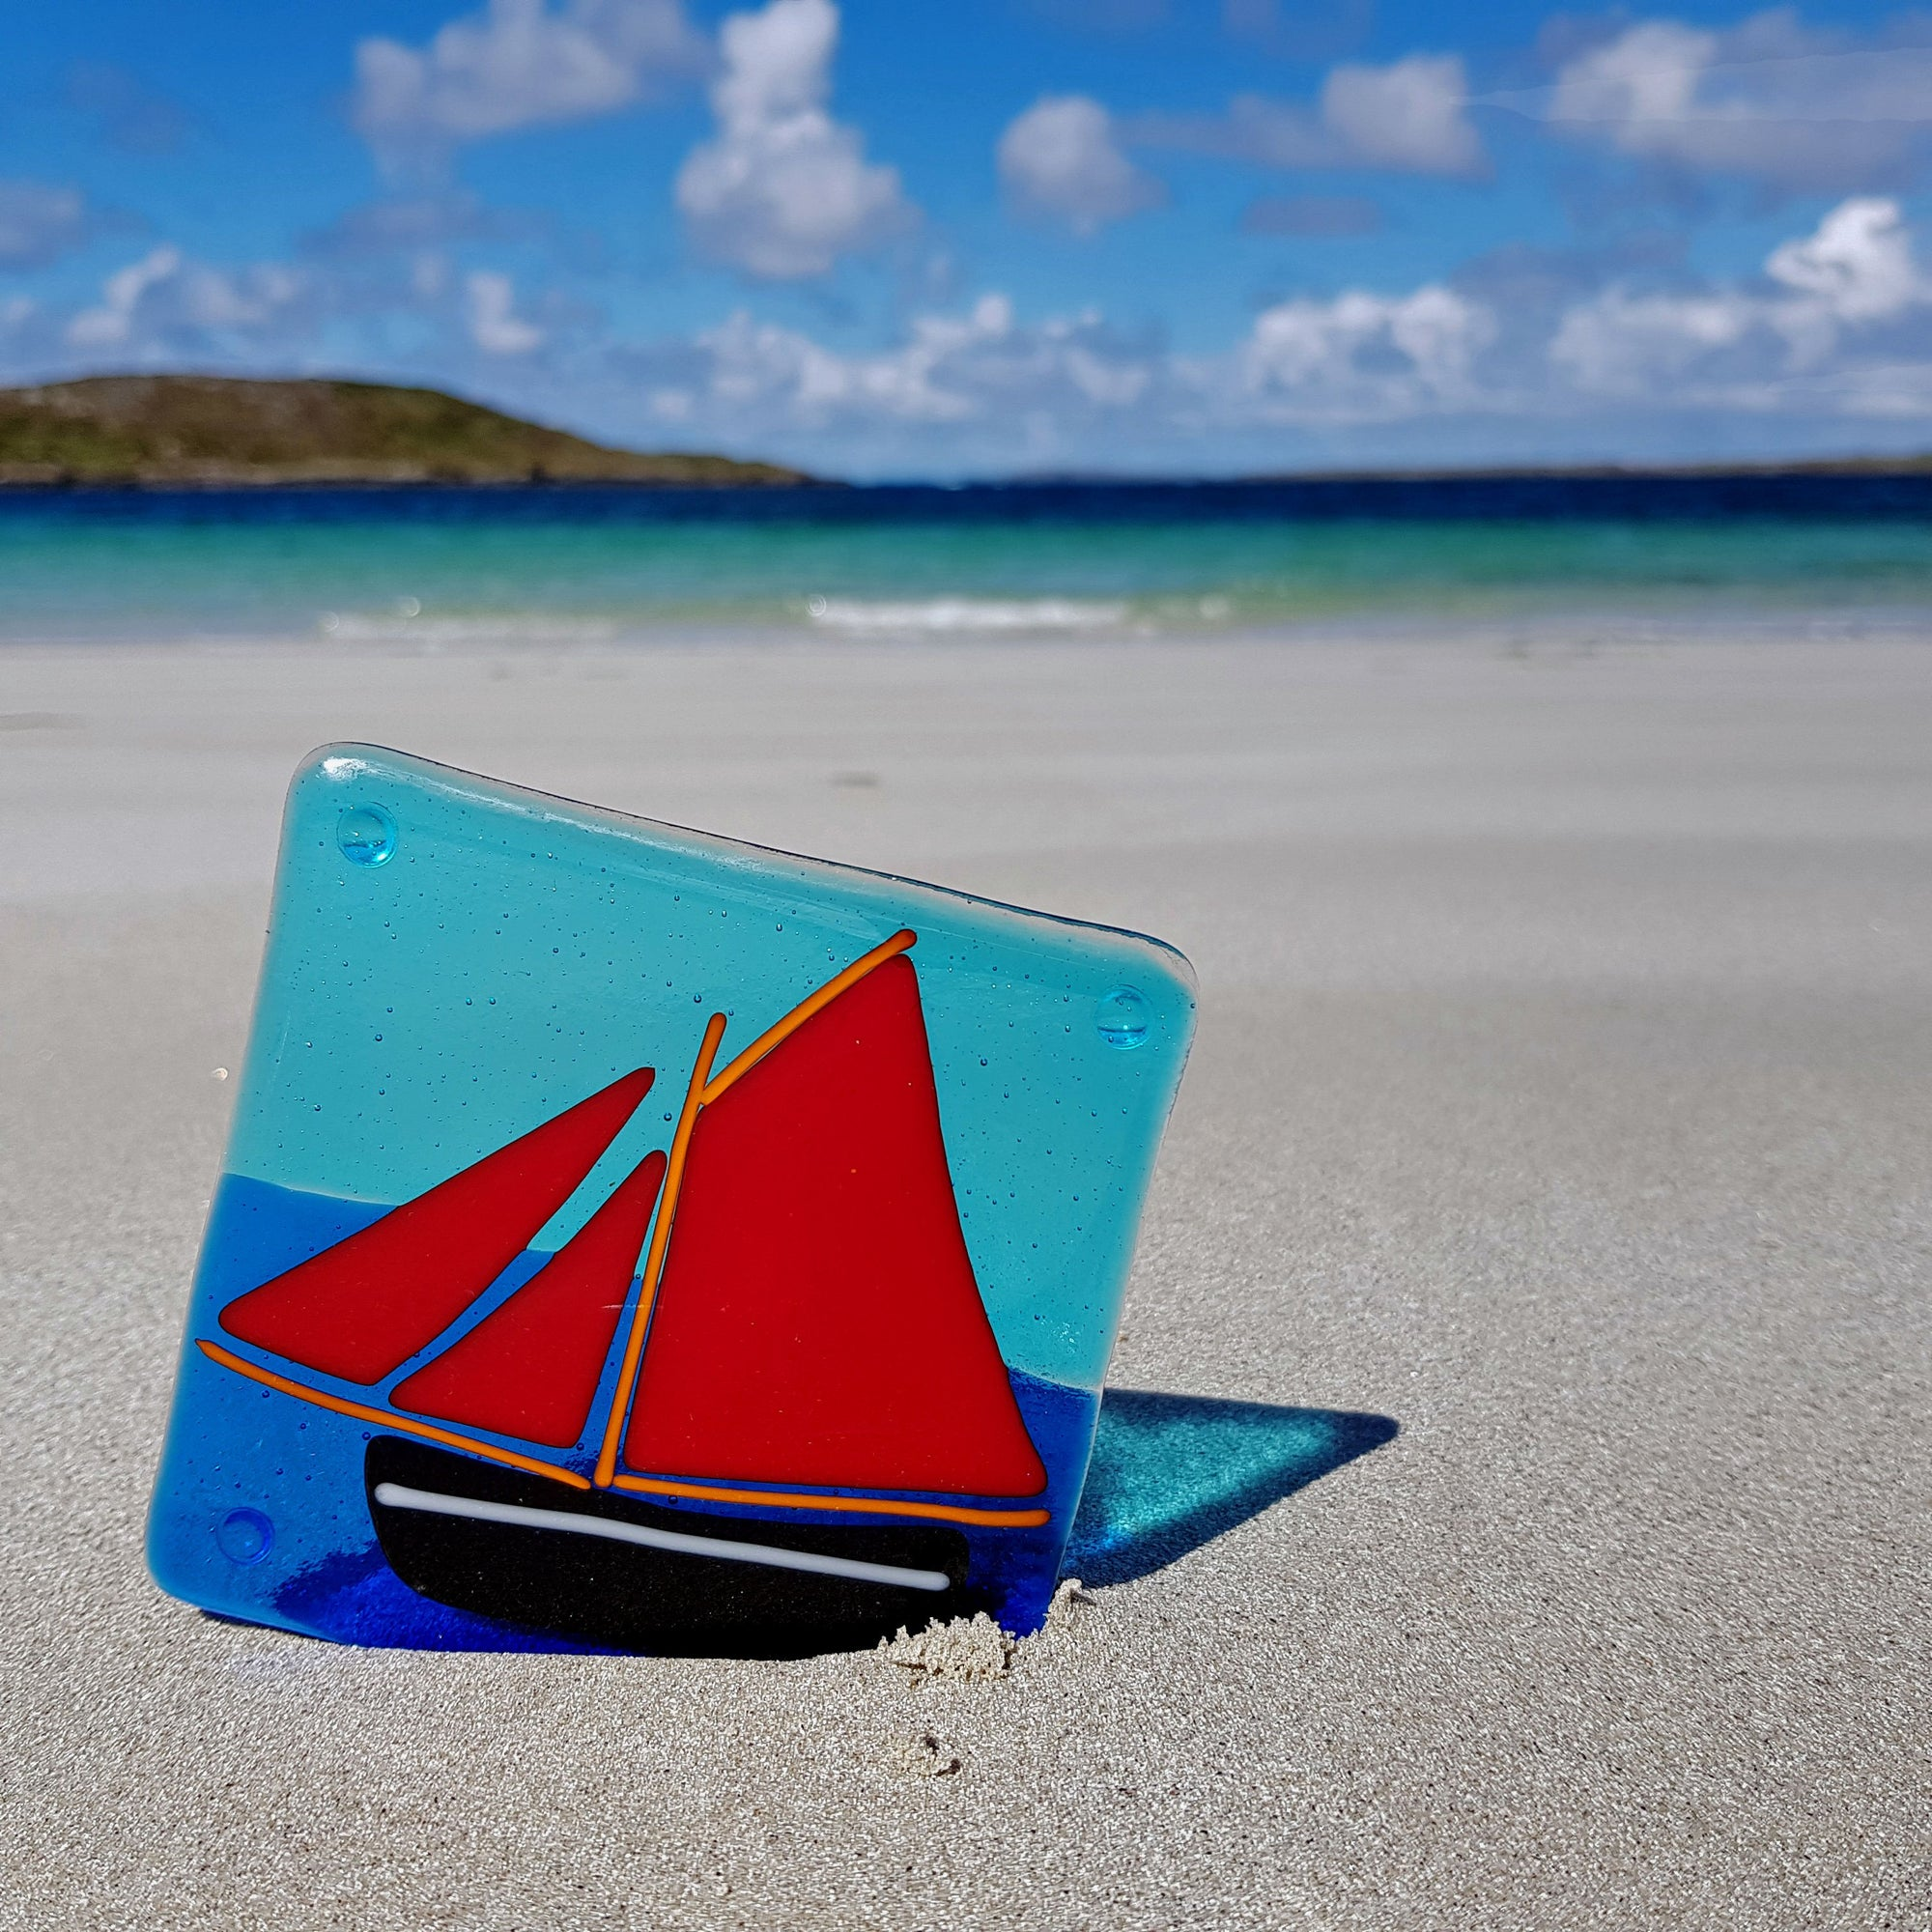 Glass coaster featuring the iconic Galway Hooker with her red sails, made by Connemara Blue